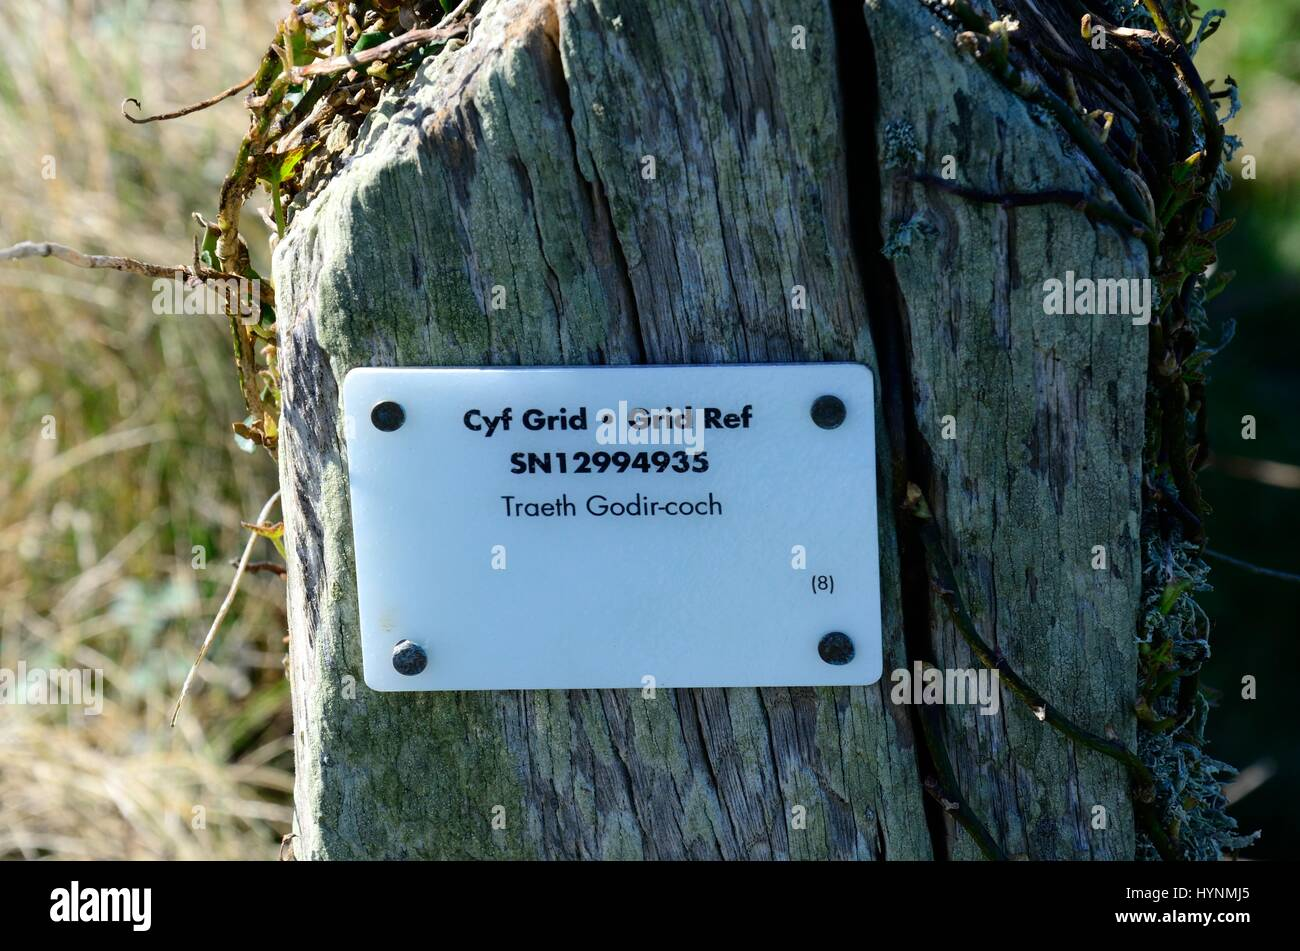 Grid reference ref sign on an old post for walkers Traeth Godir-coch beach Cemaes Head Pembrokeshire  Wales cymru - Stock Image